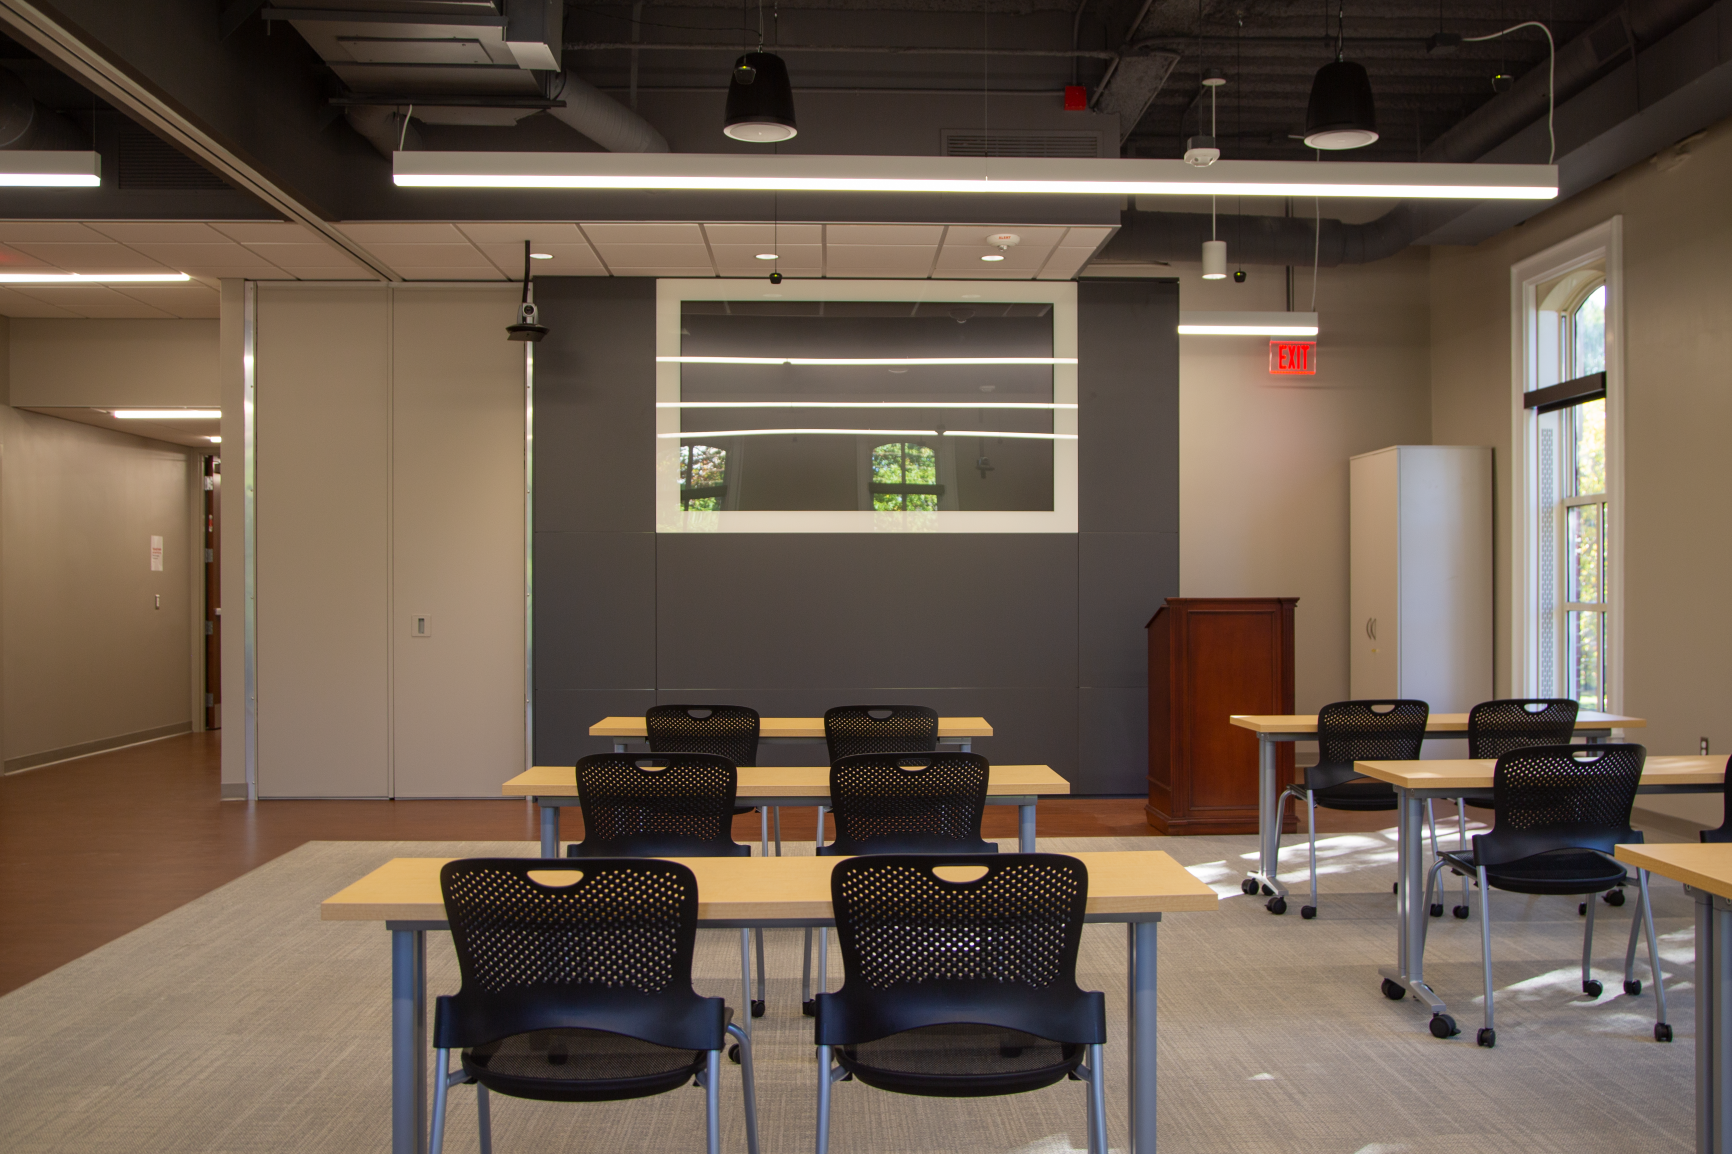 A large, integrated TV (DIRTT, once again!) makes it easier than ever to show class materials to students, both virtually and in the classroom.